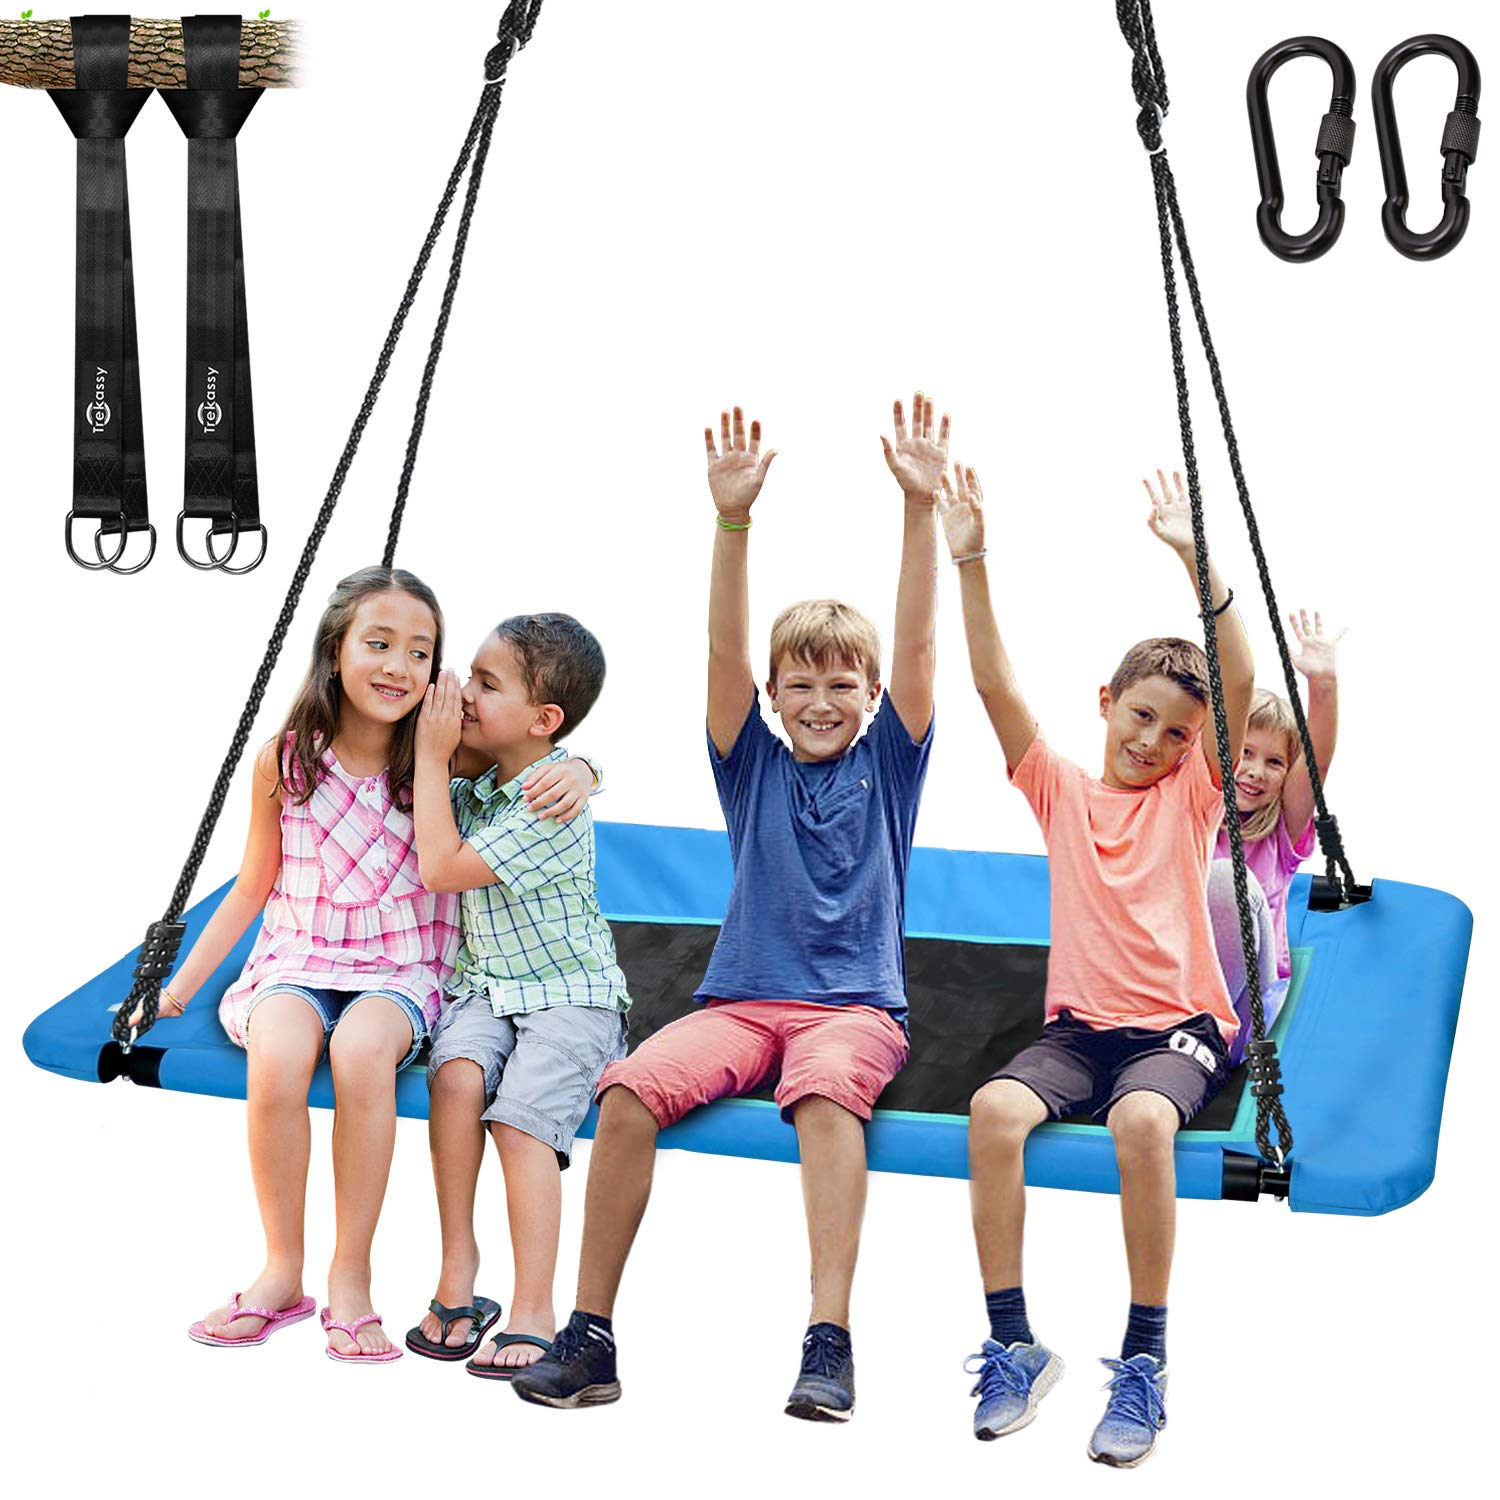 Trekassy 660lb Giant 60'' Platform Tree Swing for Kids and Adults Waterproof with Durable Steel Frame and 2 Hanging Straps by Trekassy